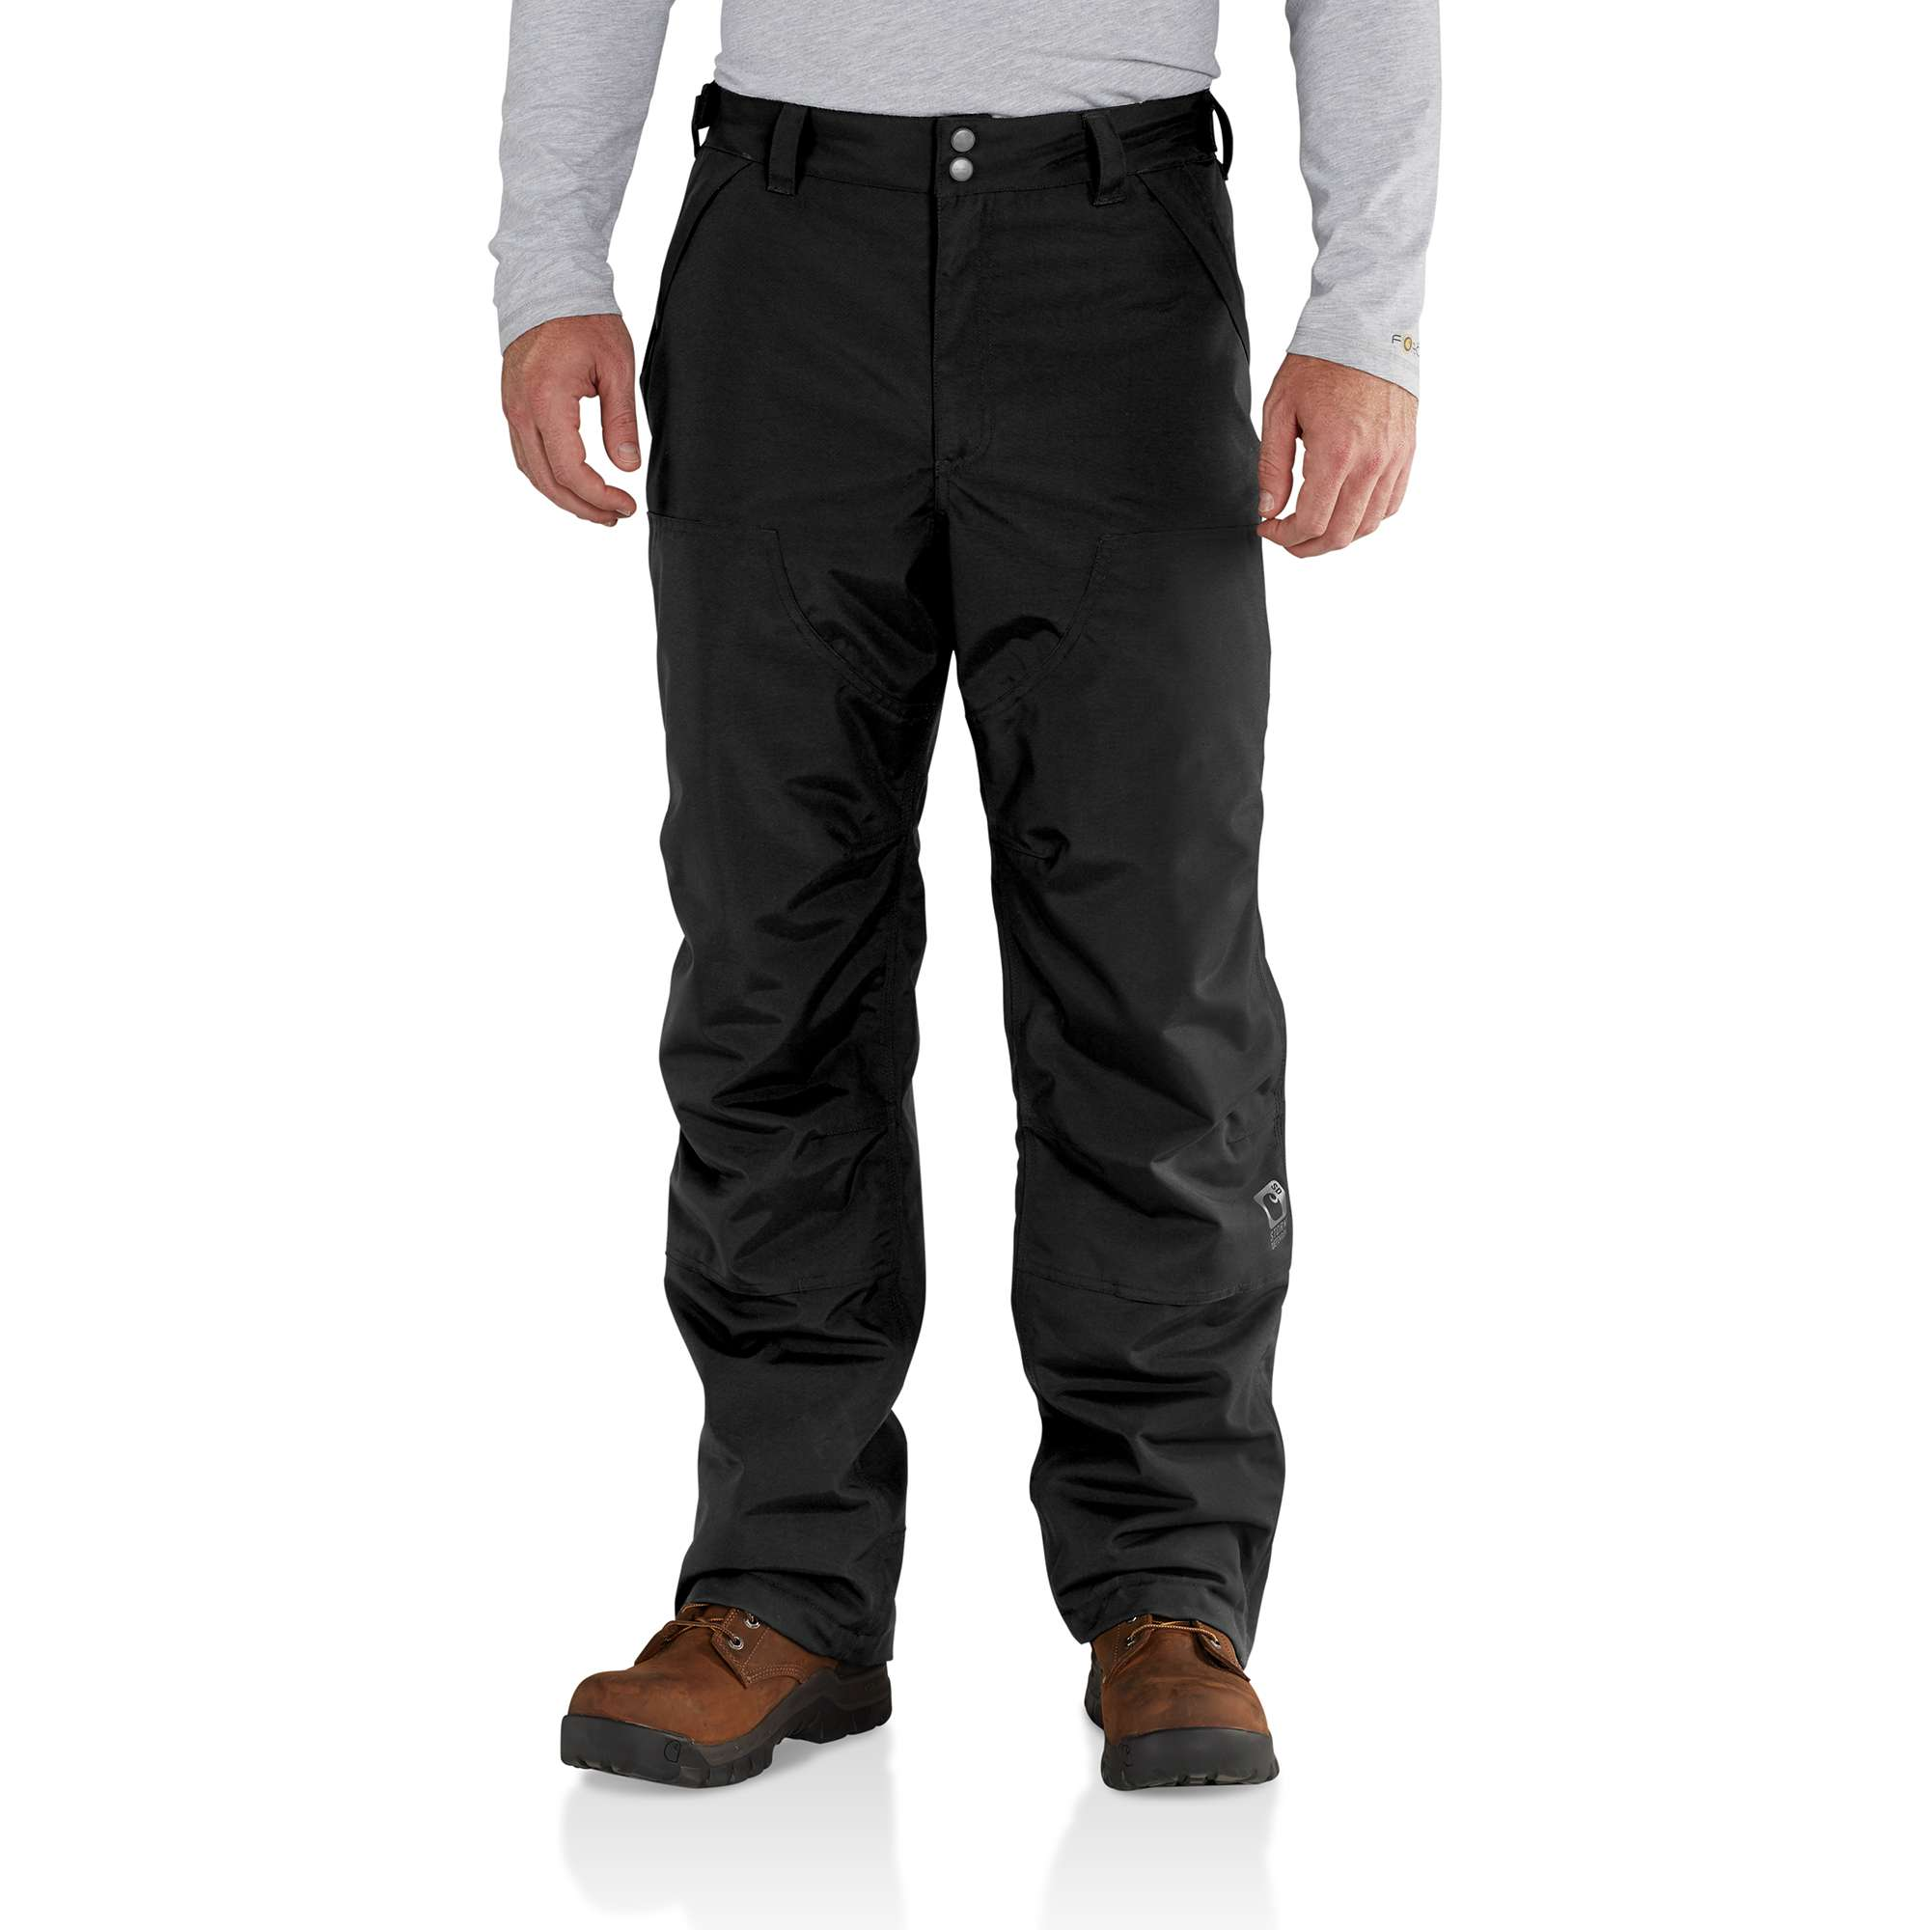 Carhartt Insulated Shoreline Pant